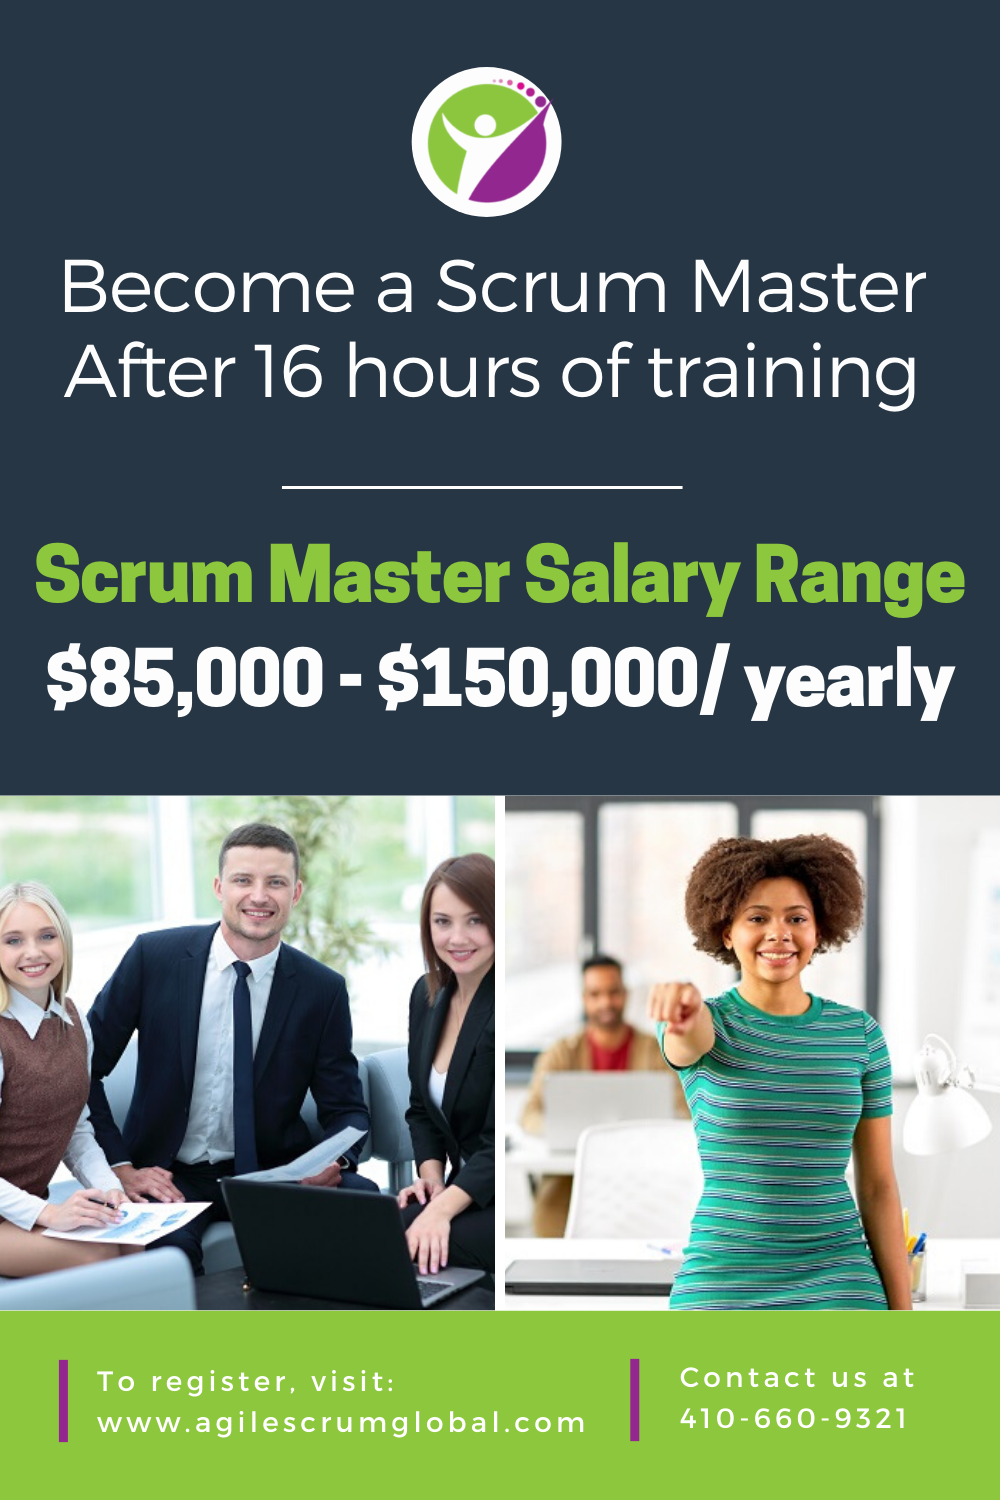 Become Scrum Master And Make Huge Bucks Scrum Master Scrum Online Training